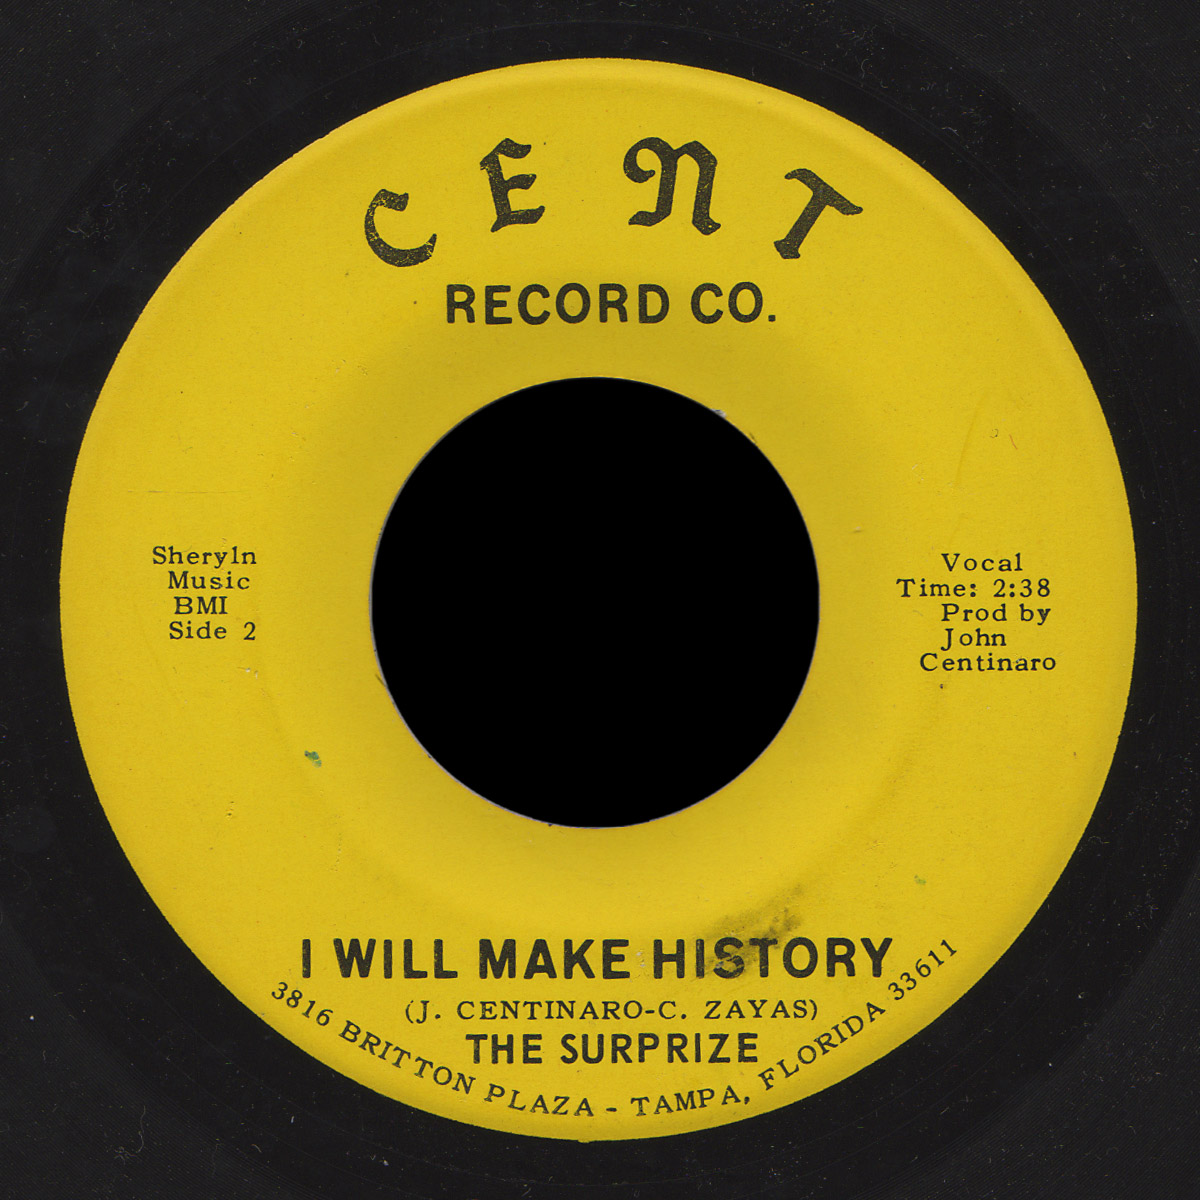 The Surprize Cent 45 I Will Make History